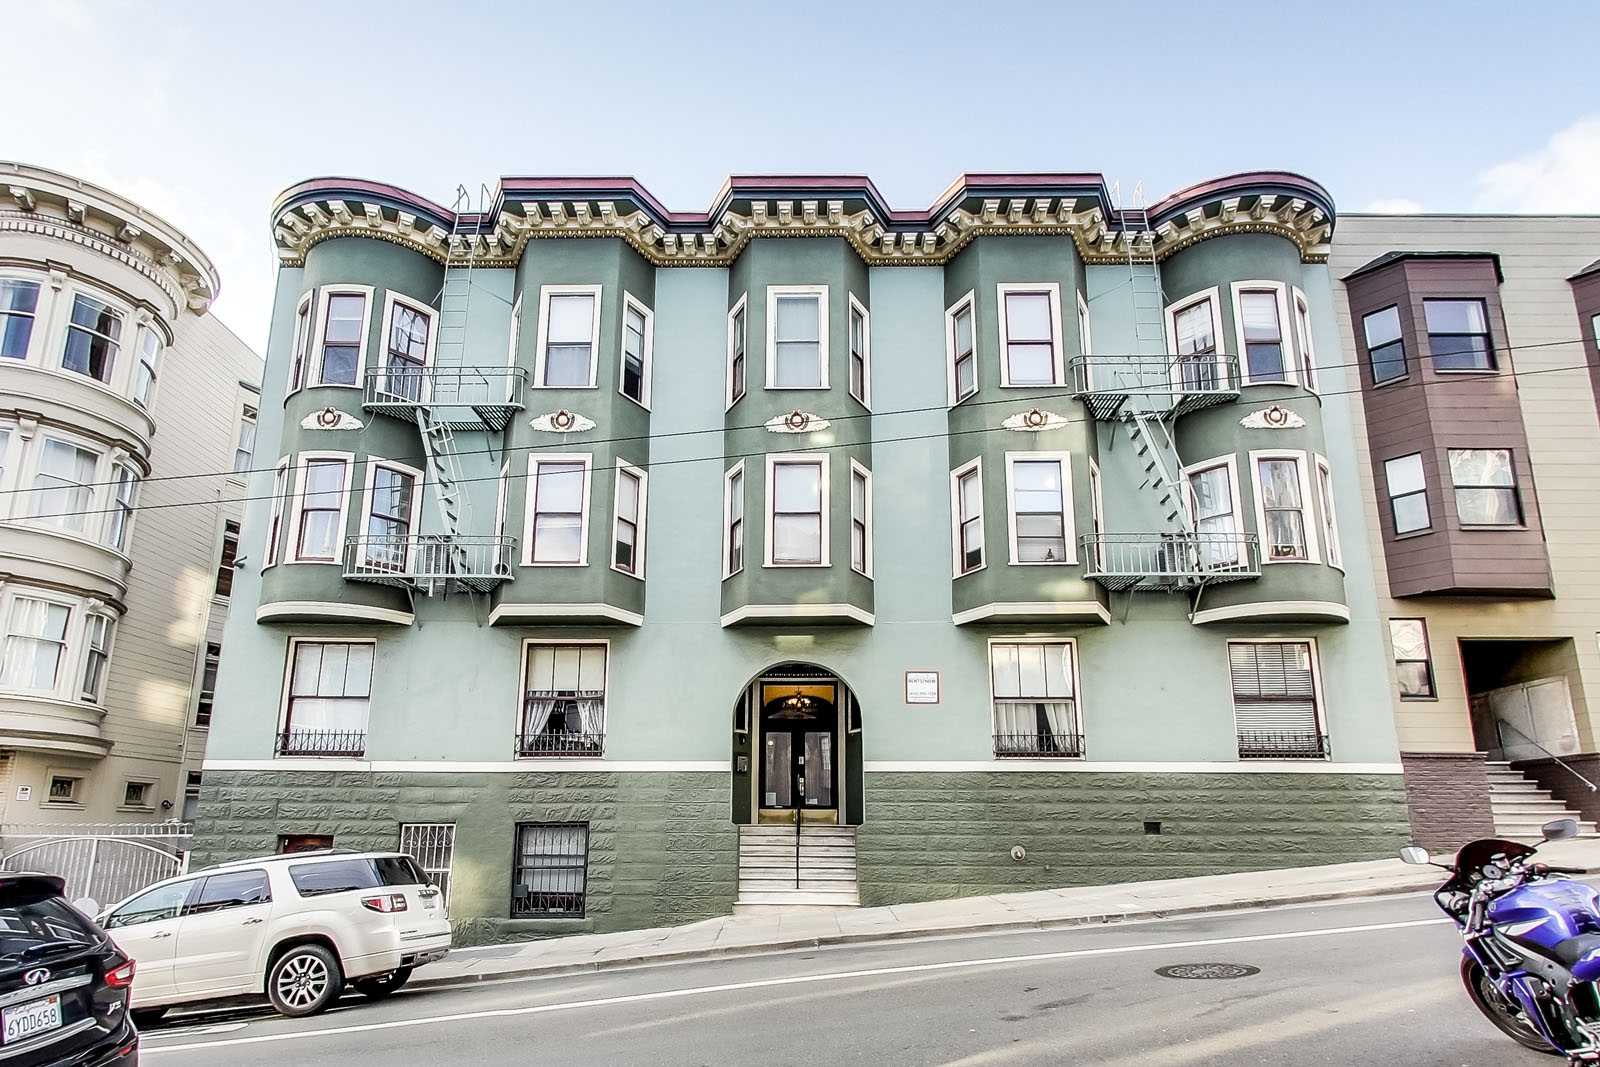 1560 SACRAMENTO Apartments & Suites, San Francisco - (see ...